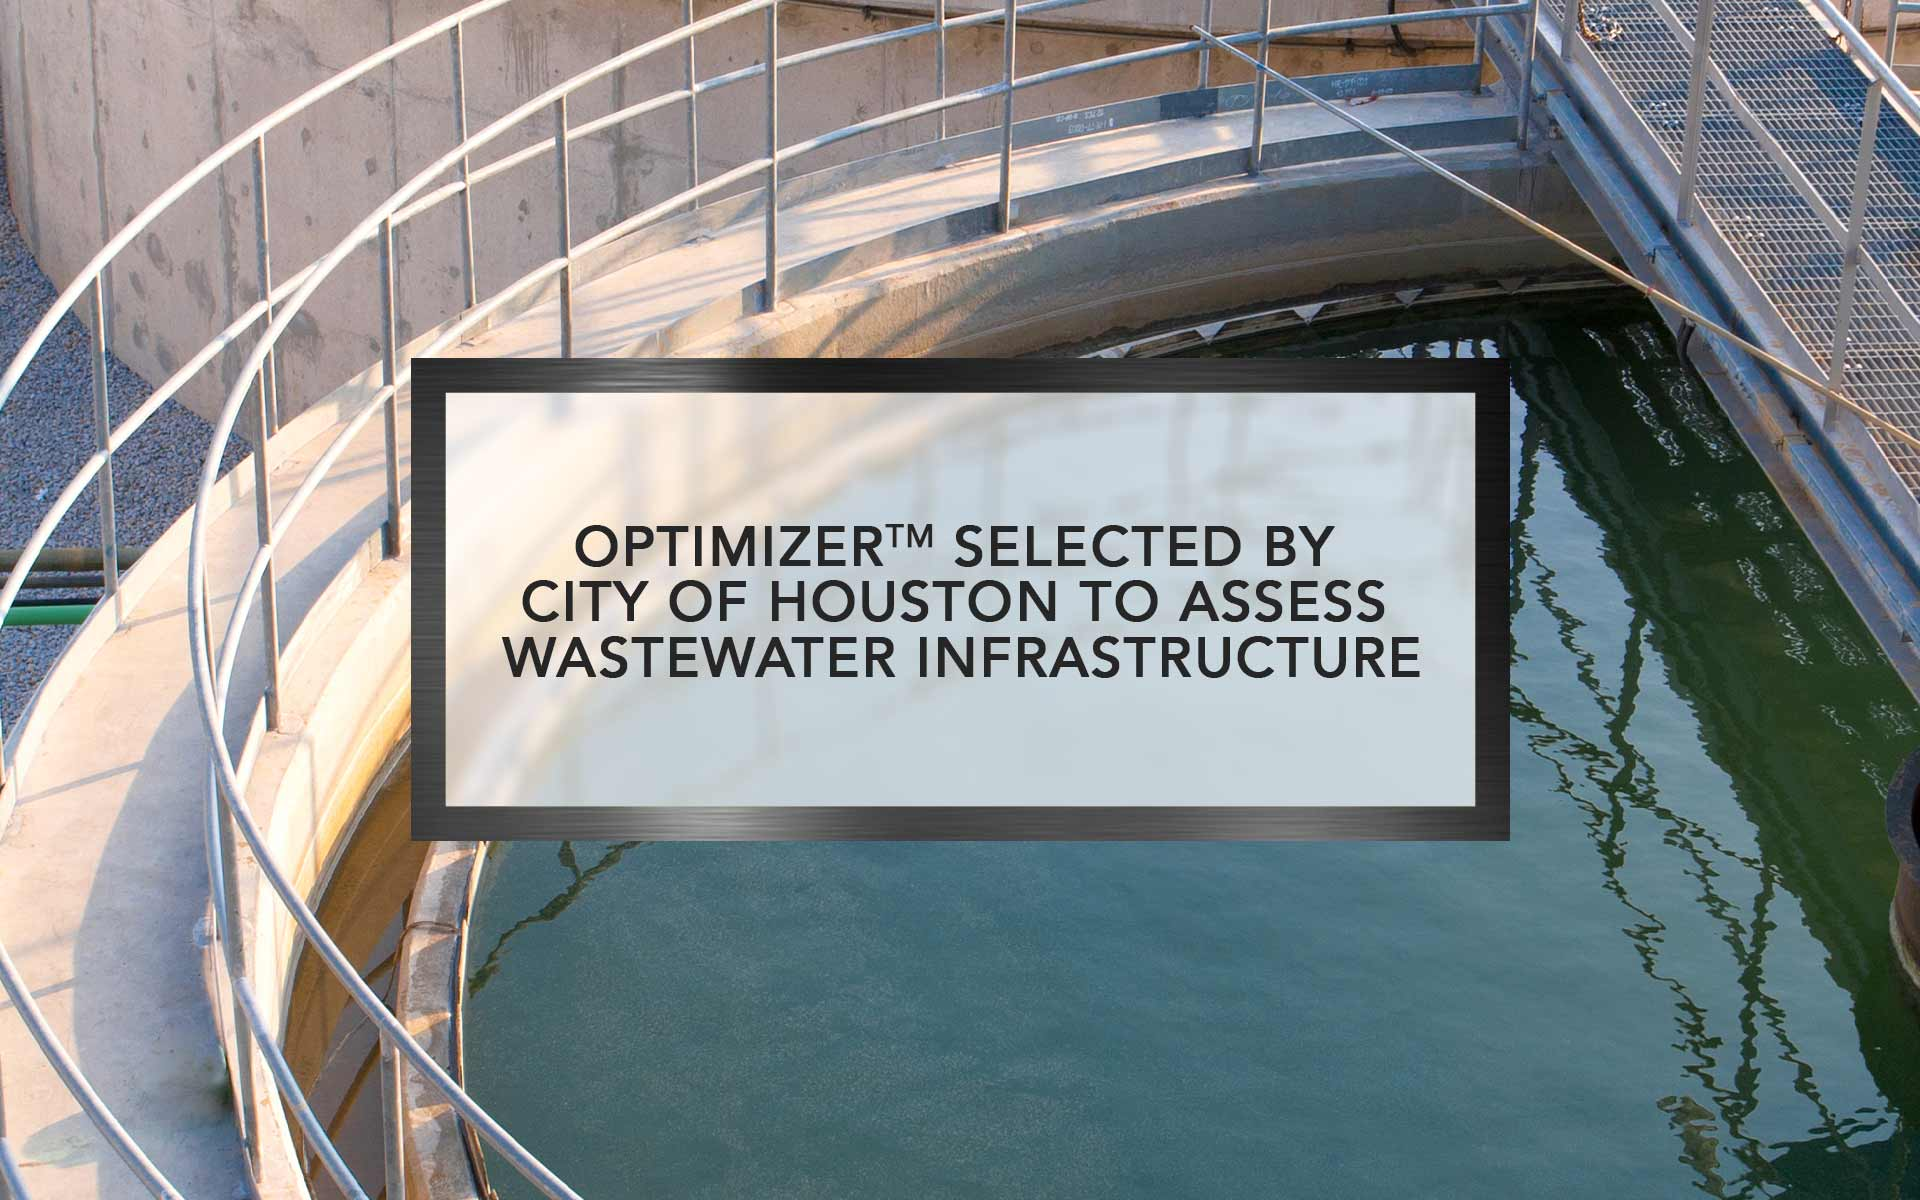 Optimizer selected by City of Houston to assess Wastewater Infrastructure